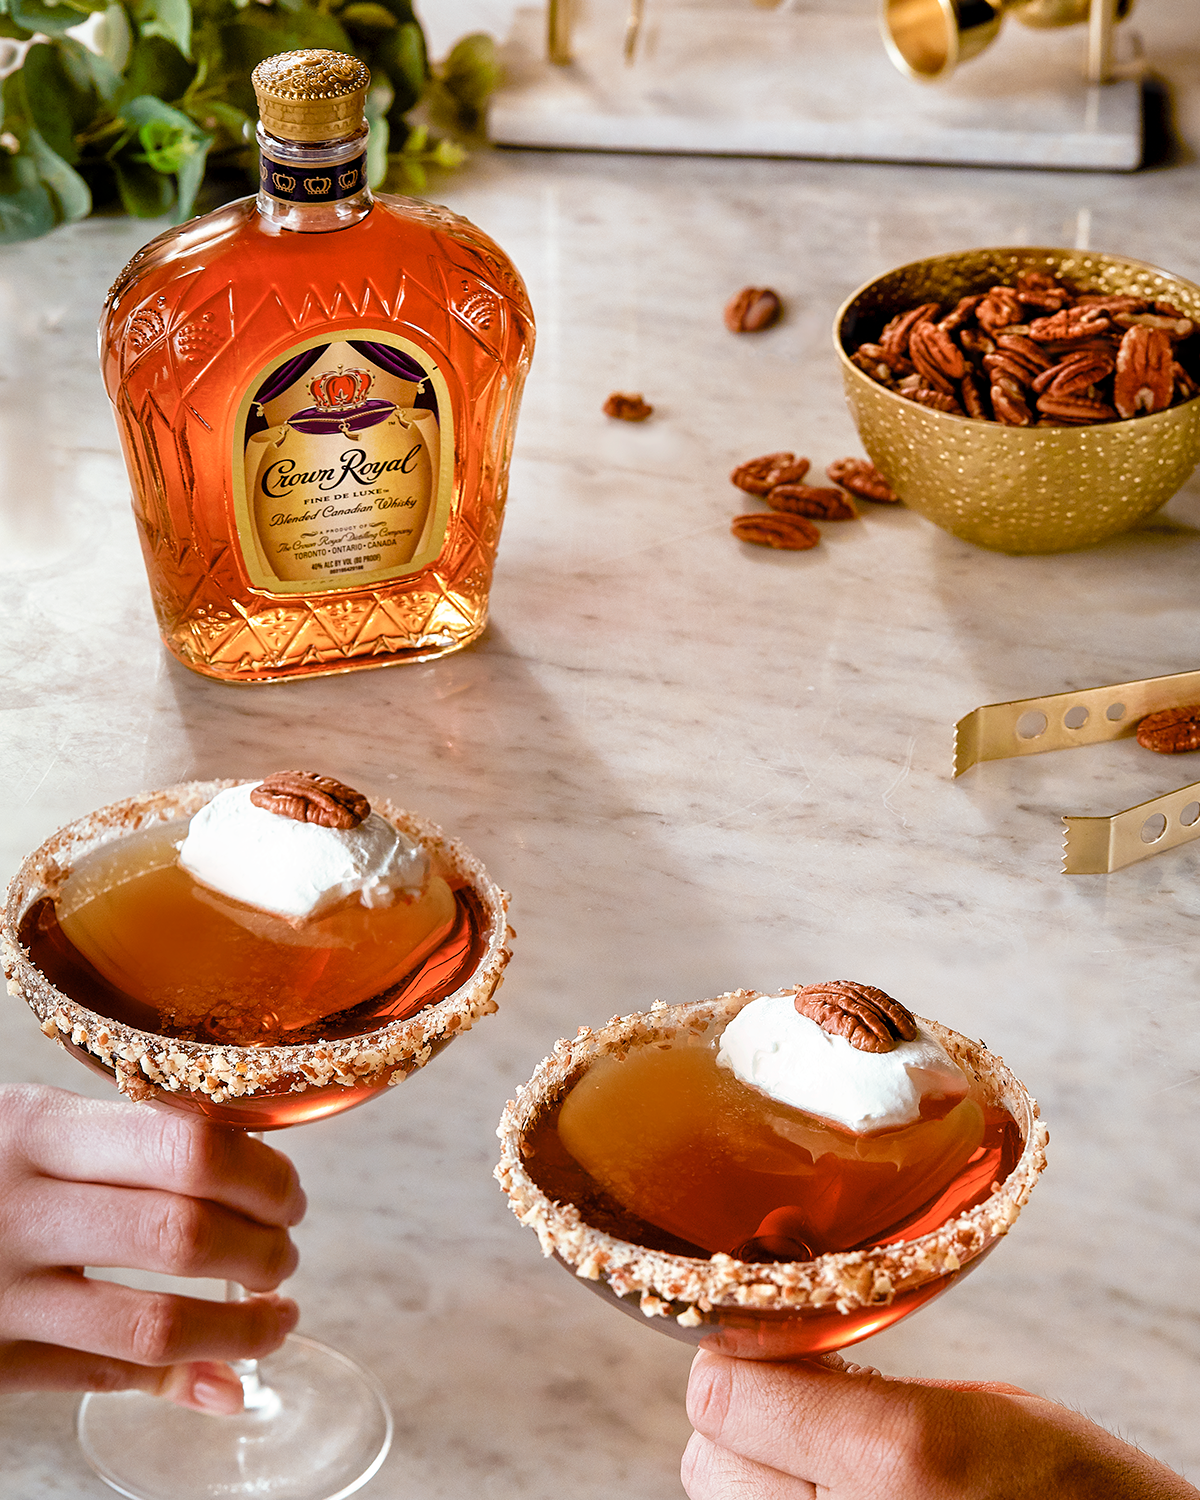 Crown Royal Crown Pecan Pie Whisky Cocktail